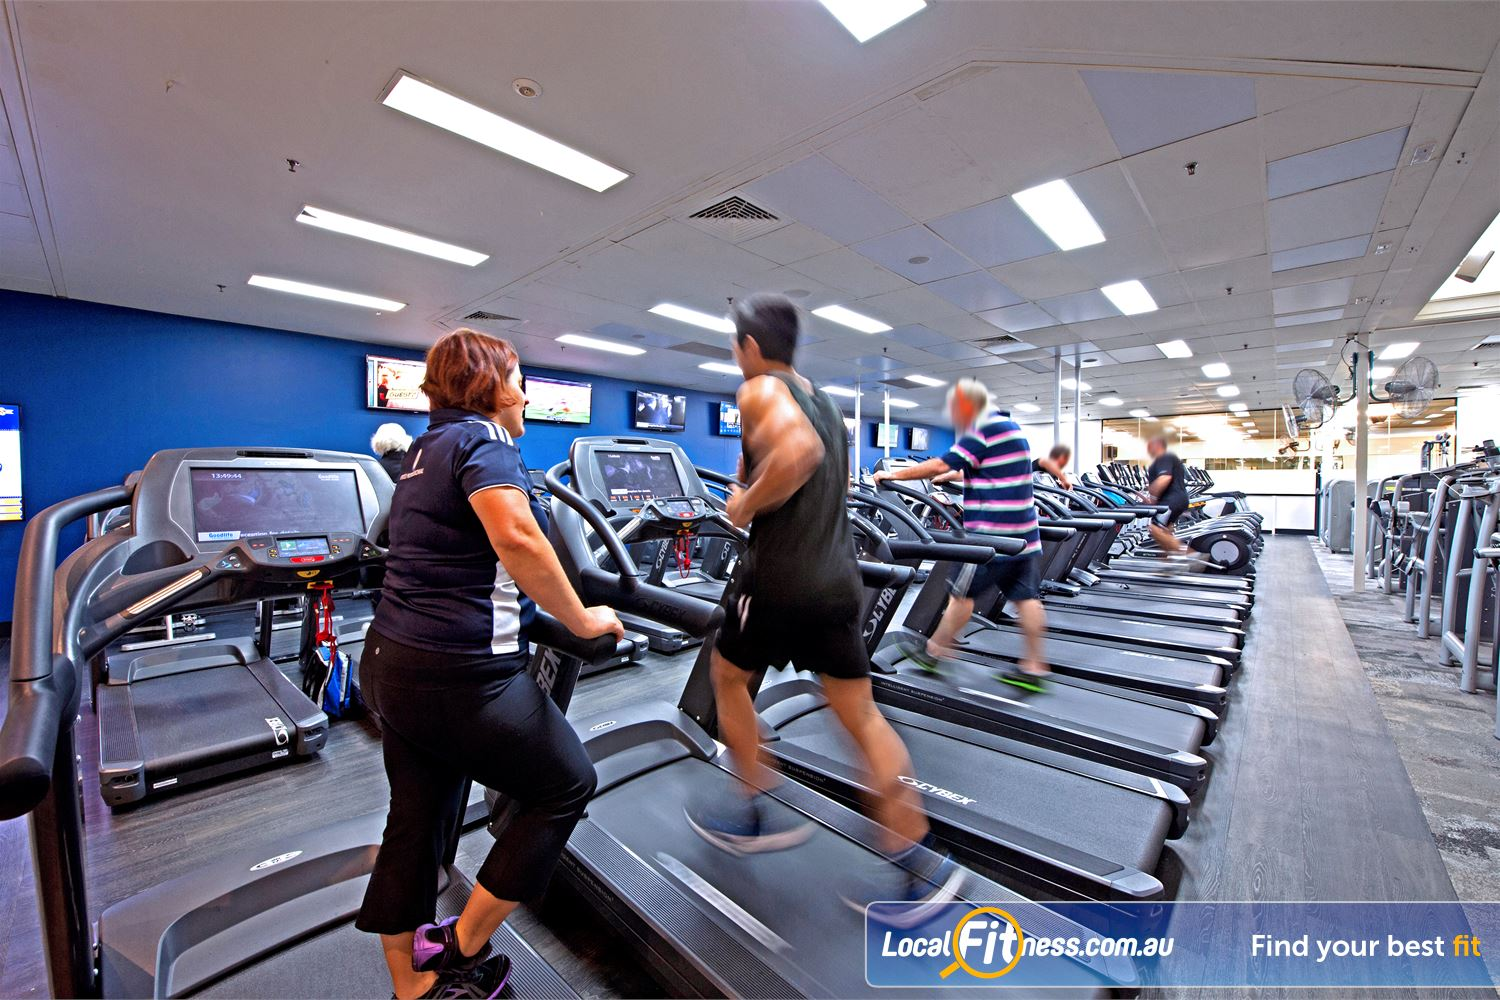 Goodlife Health Clubs Near Mosman Park Our Cottesloe gym facilities include the latest cardio with in-built LCD and iPod connectivity.